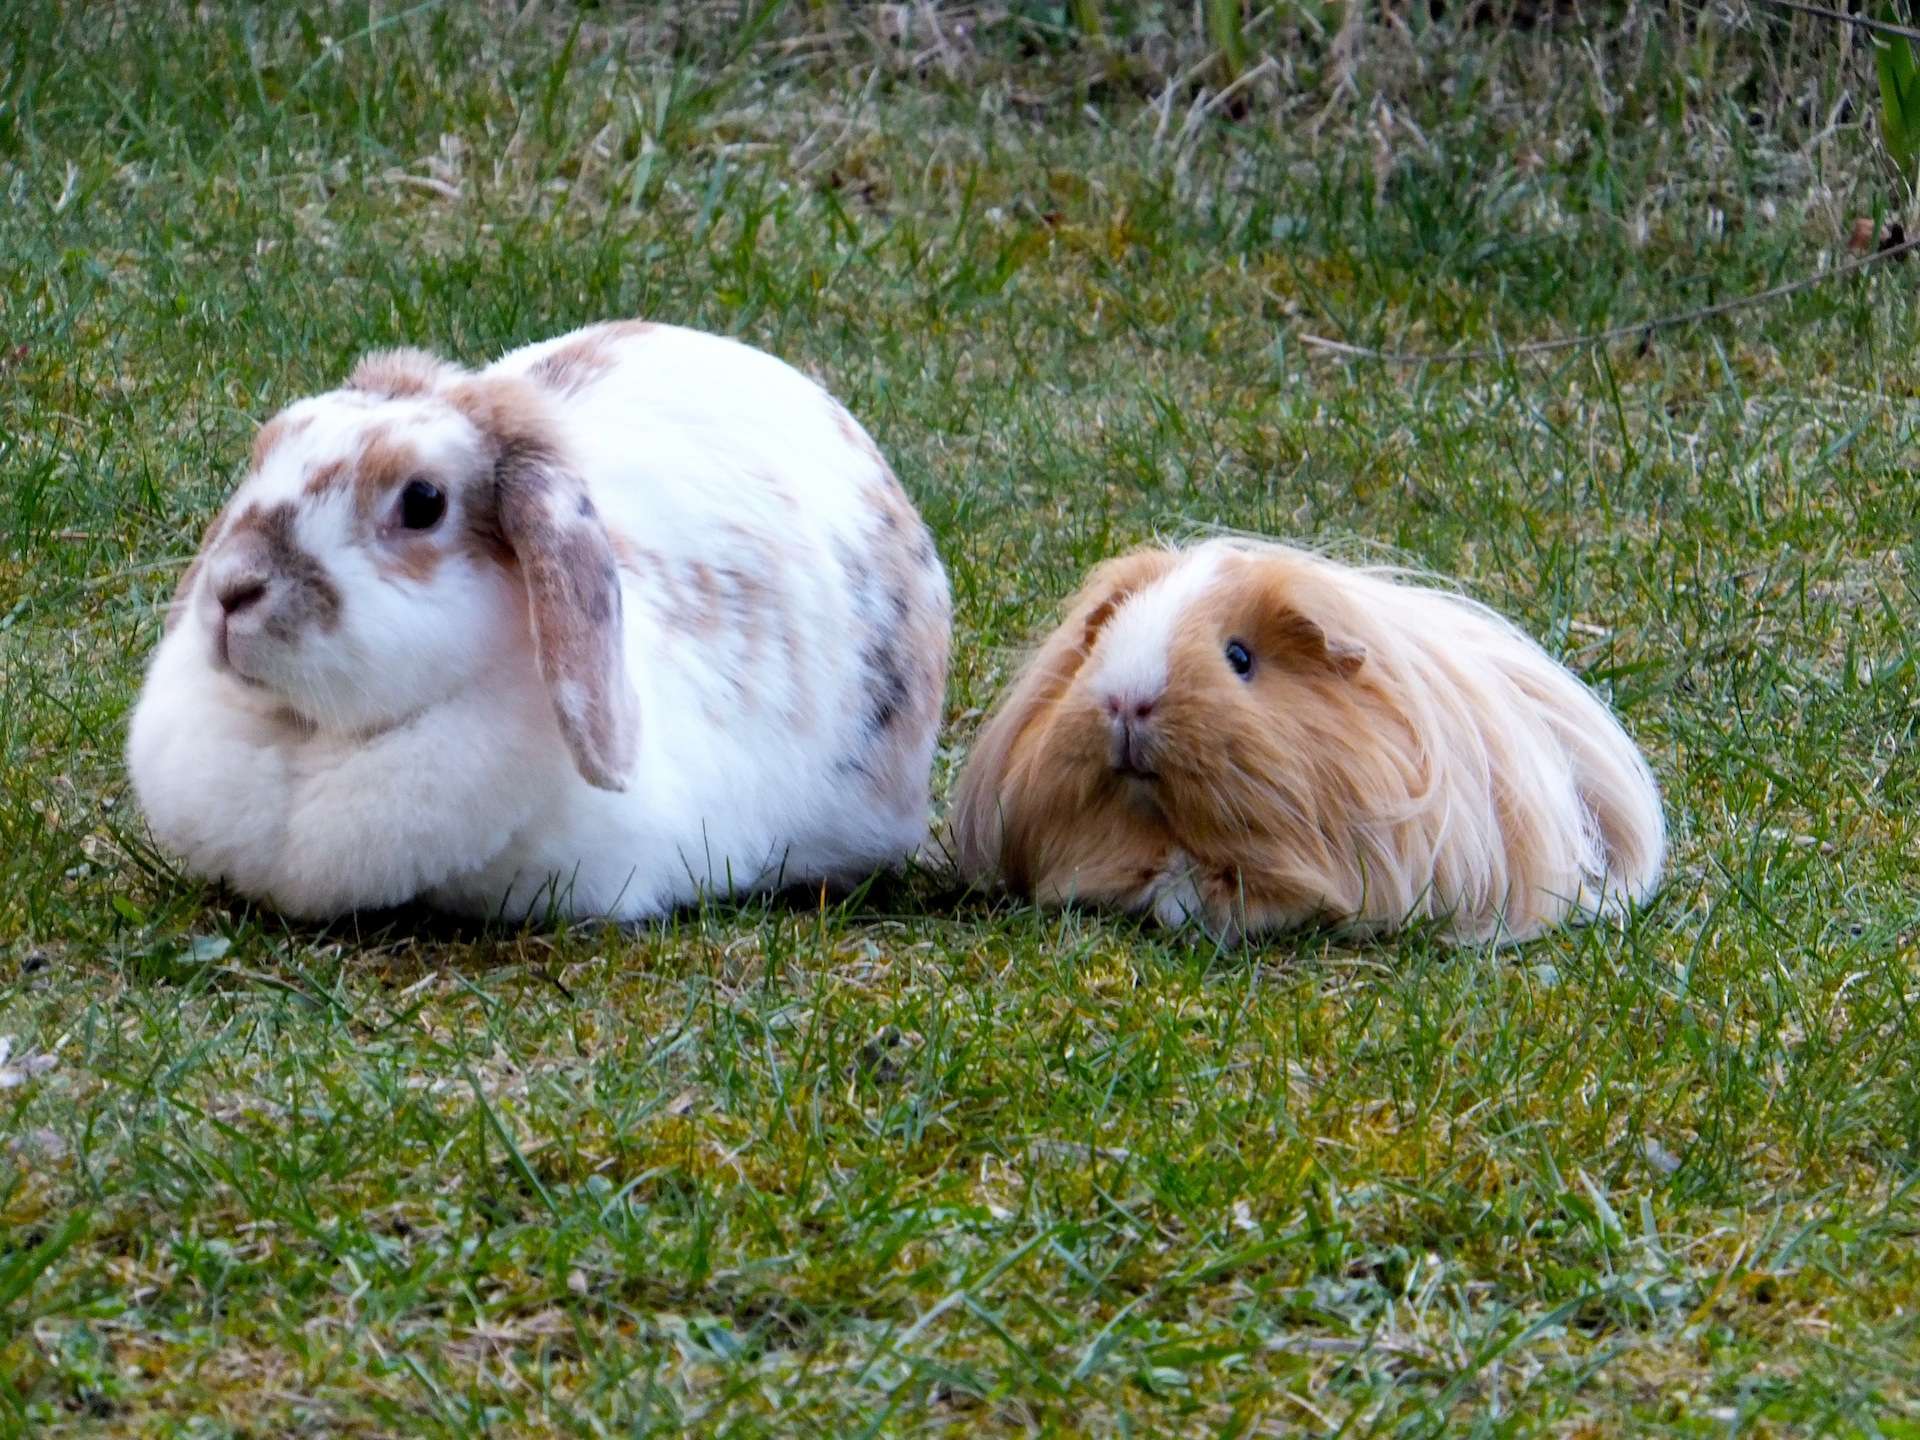 Bunny and Her Guinea Pig Friend Relax Together in the Garden